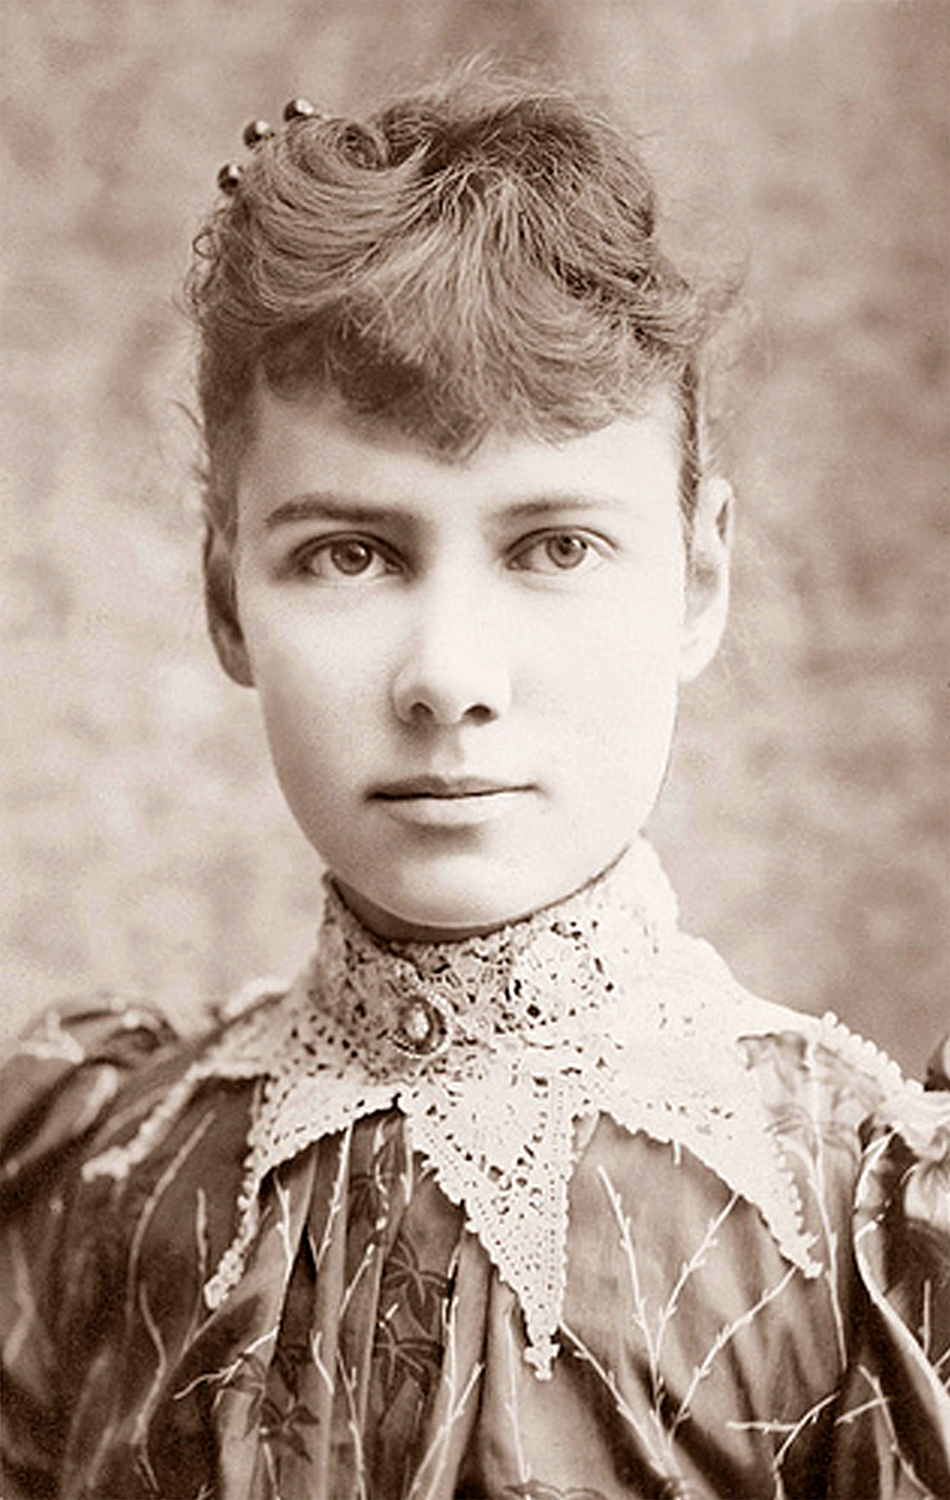 Nellie Bly 2. Nellie Bly, un novedoso estilo muy particular